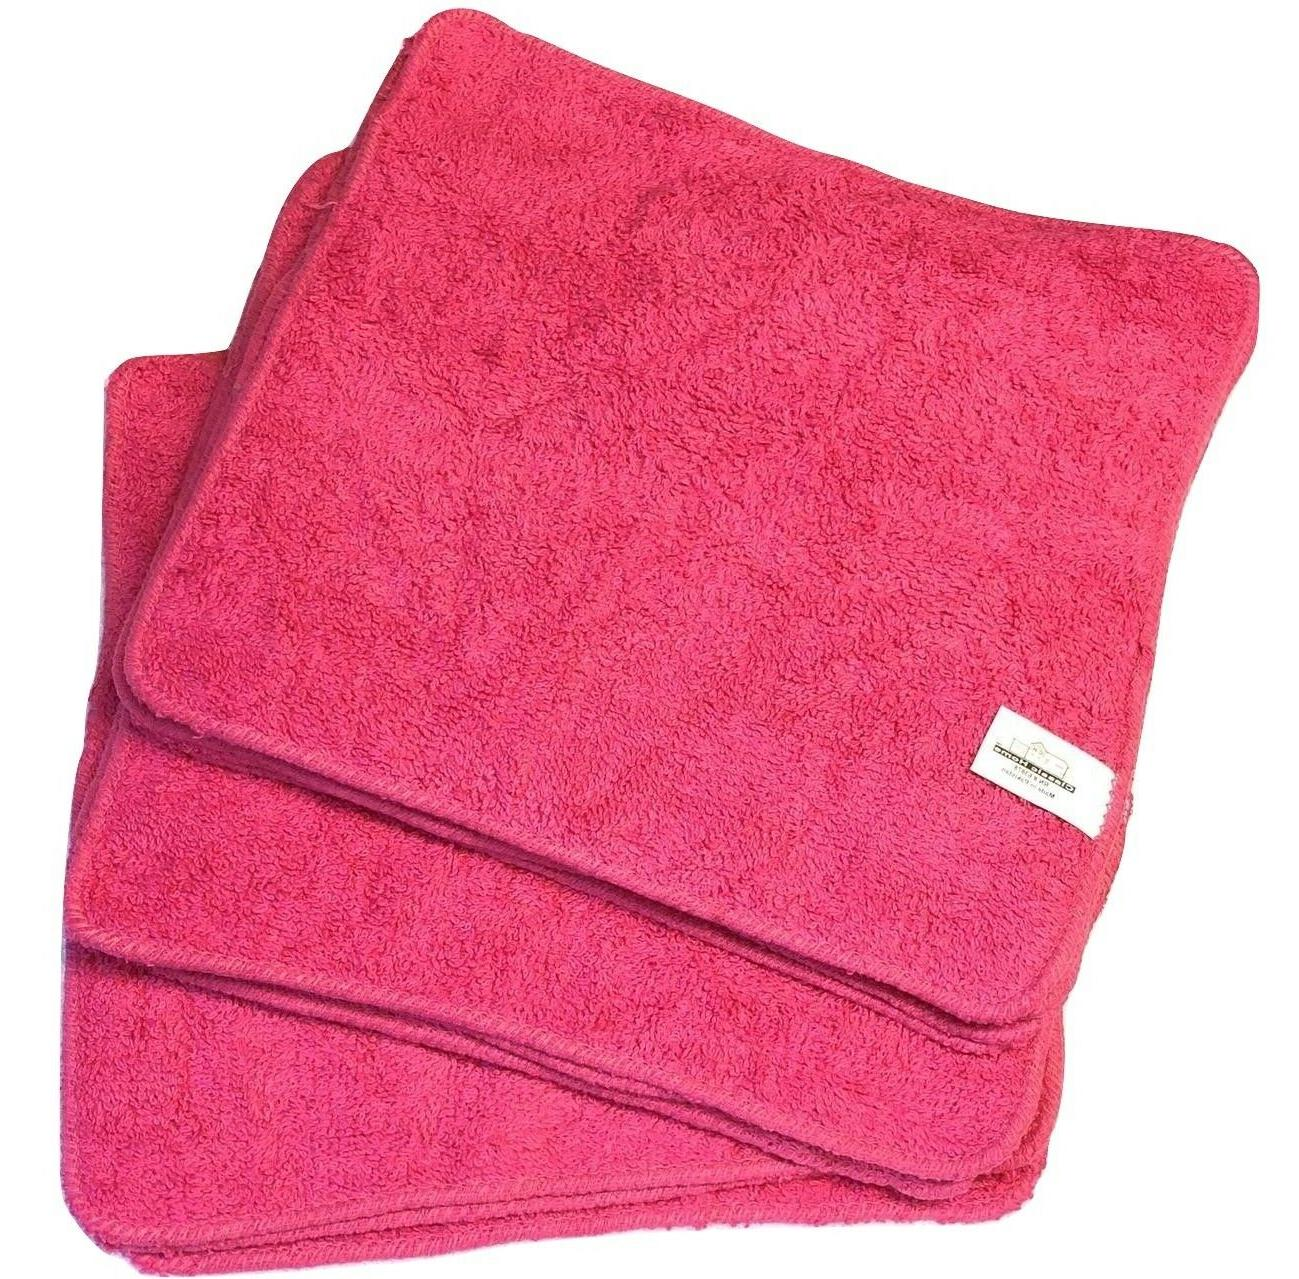 Washcloth Towel Cotton 12x12 Washcloths Towel